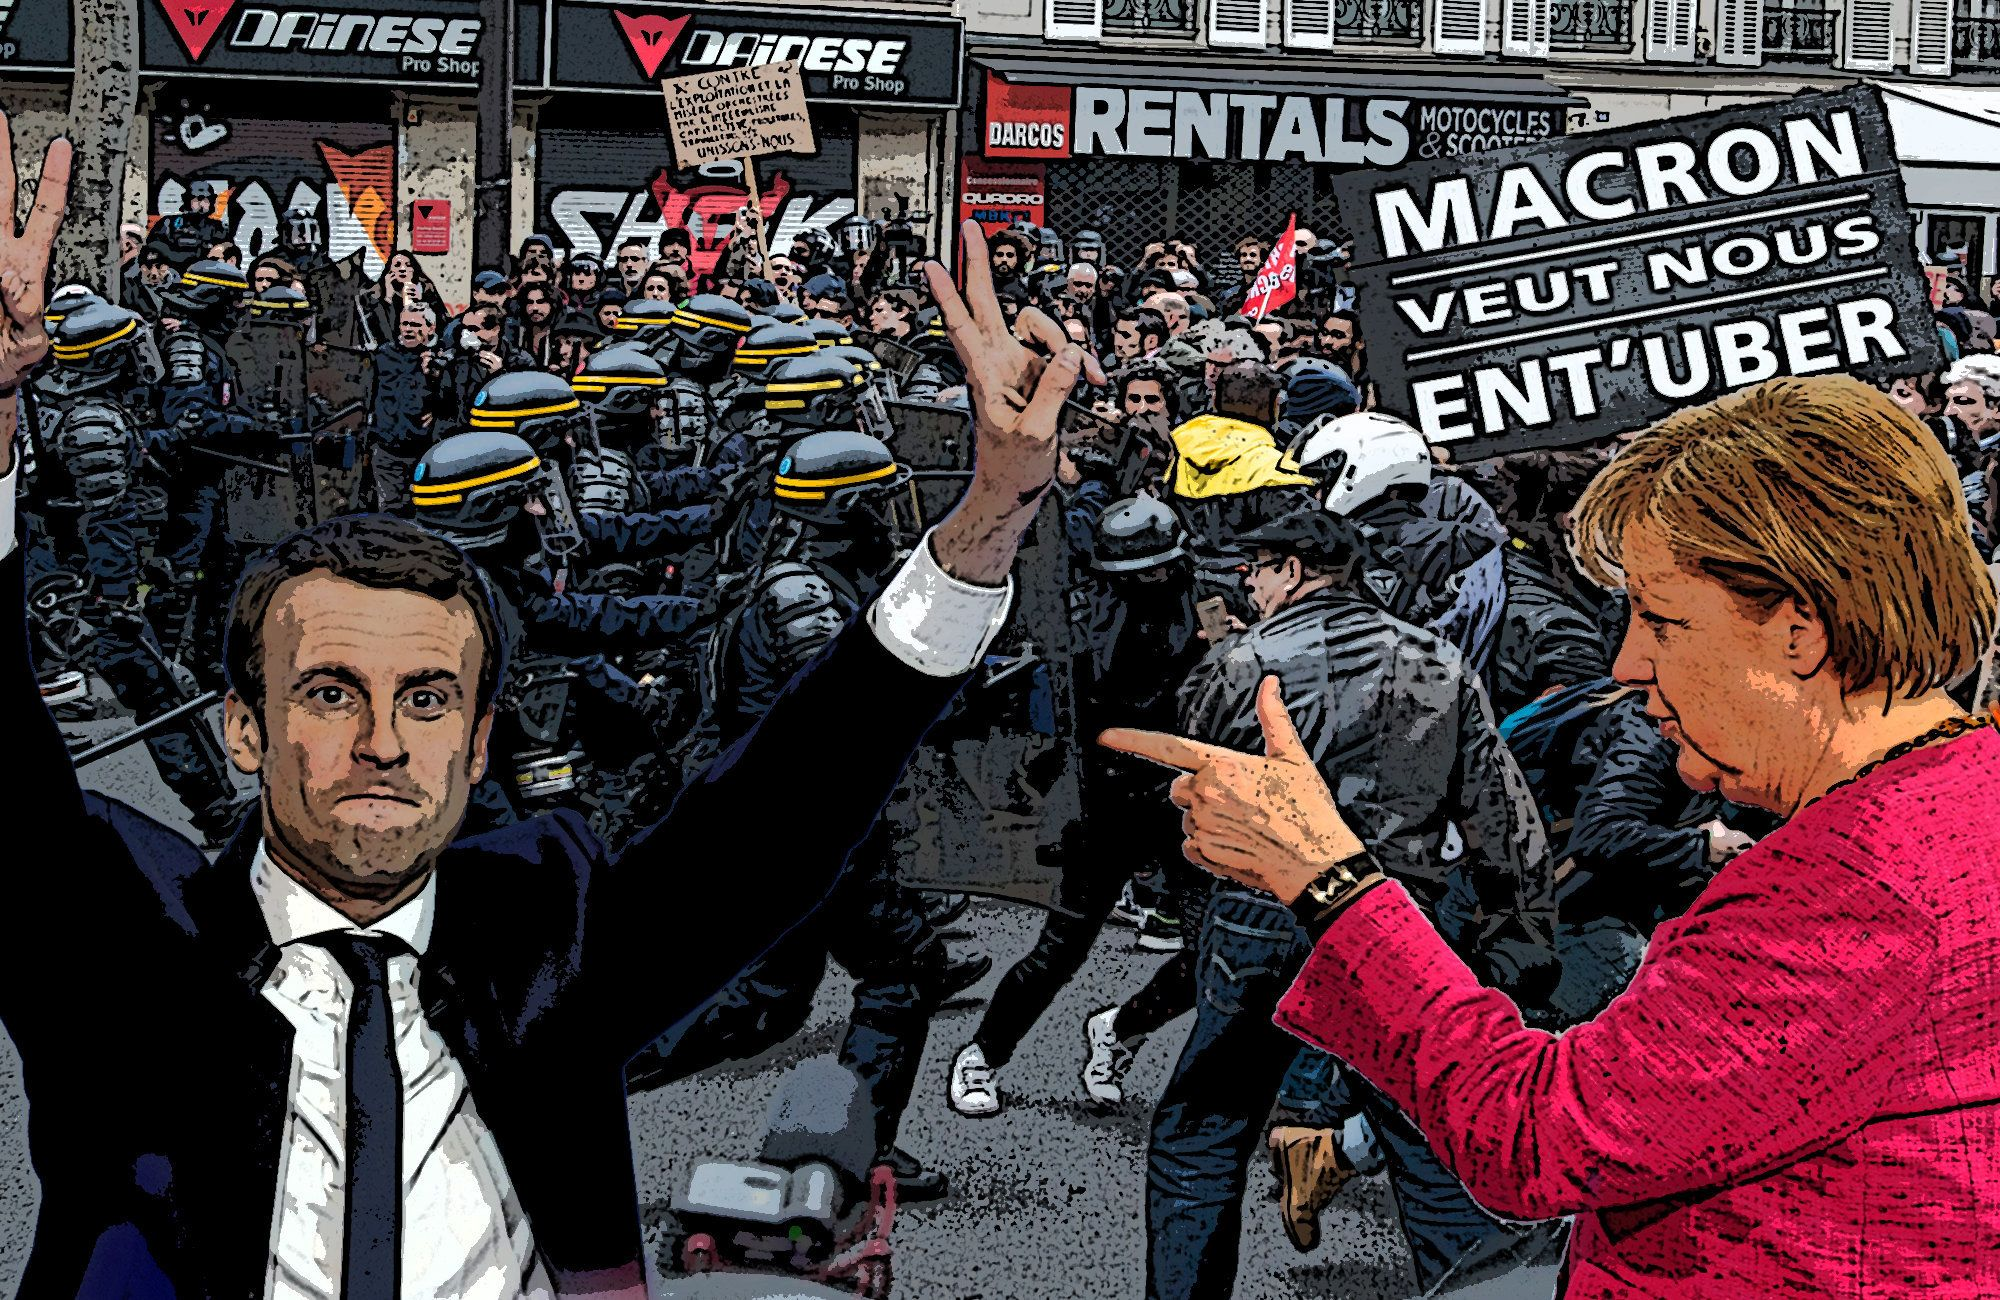 Europe looks on after Macron triumphs in France